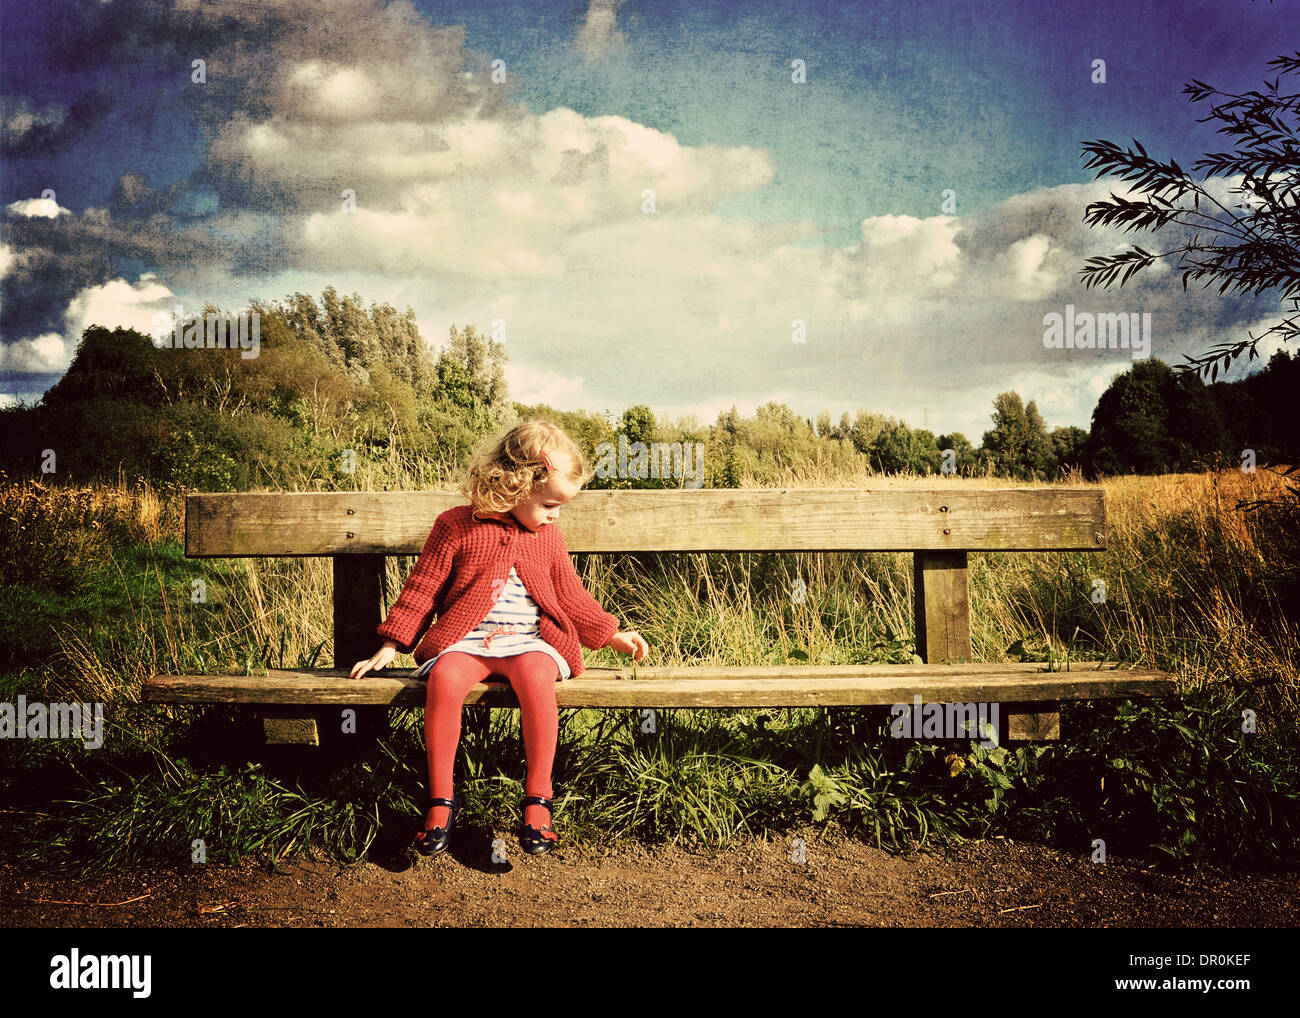 Little girl waiting on bench in countryside. - Stock Image